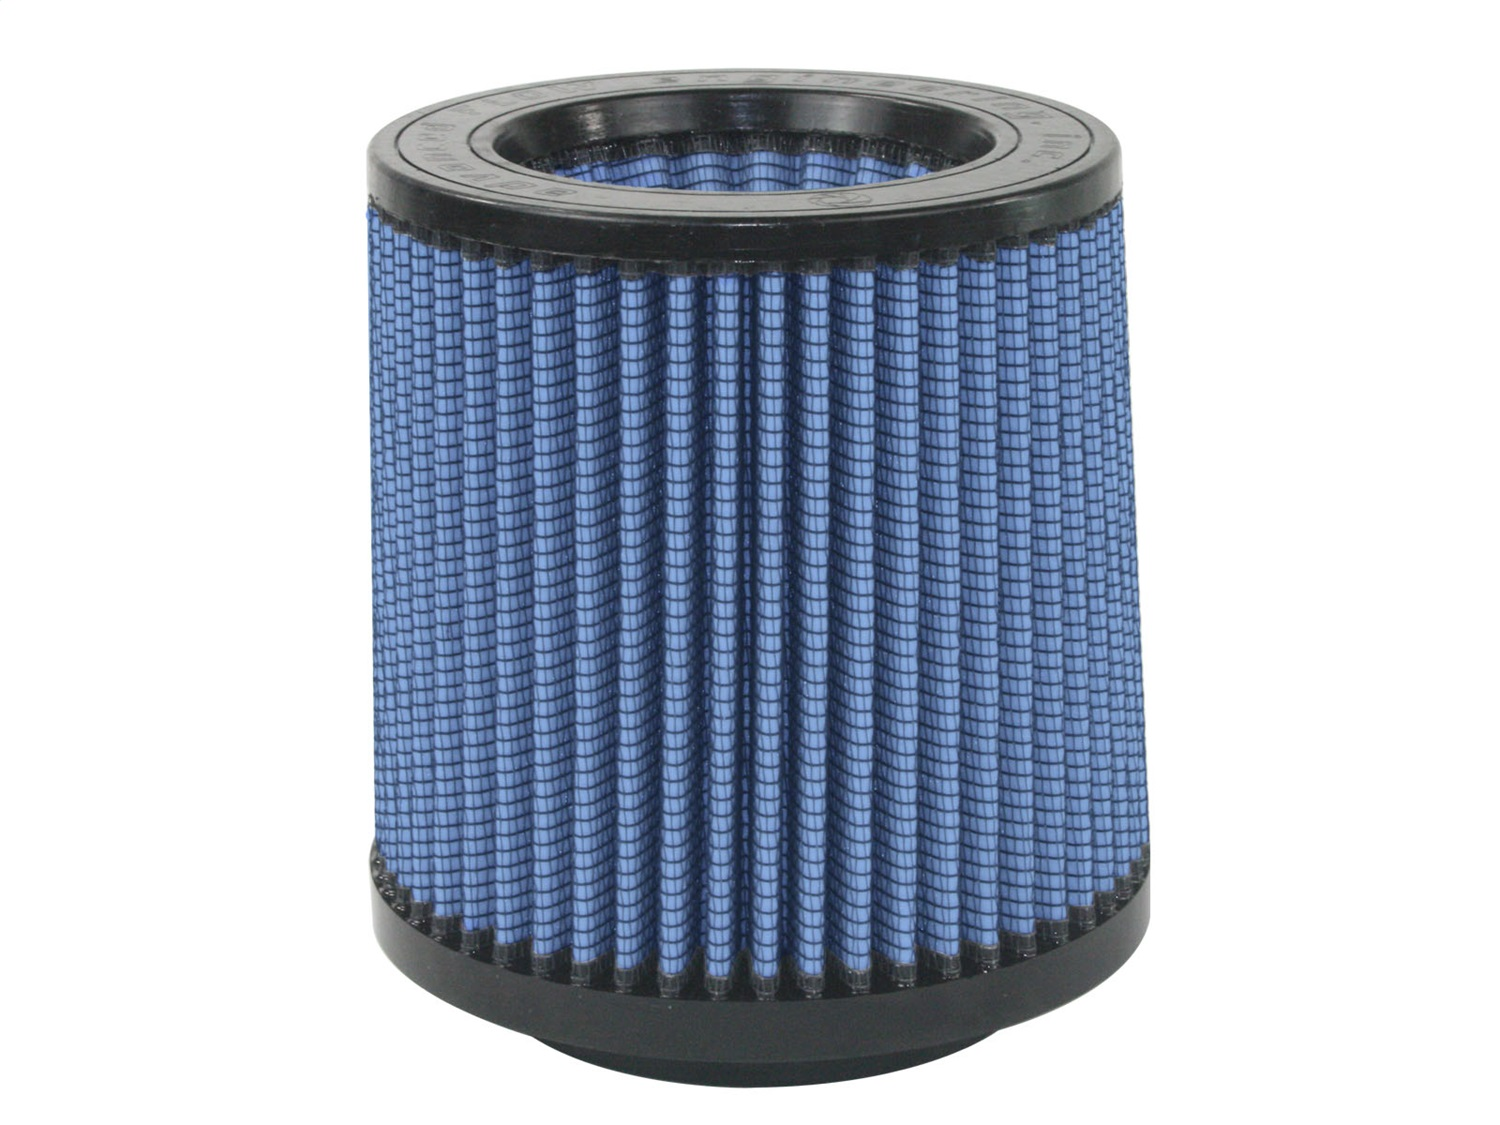 aFe Power 10-10121 Magnum FLOW Pro 5R OE Replacement Air Filter Fits A4 Quattro